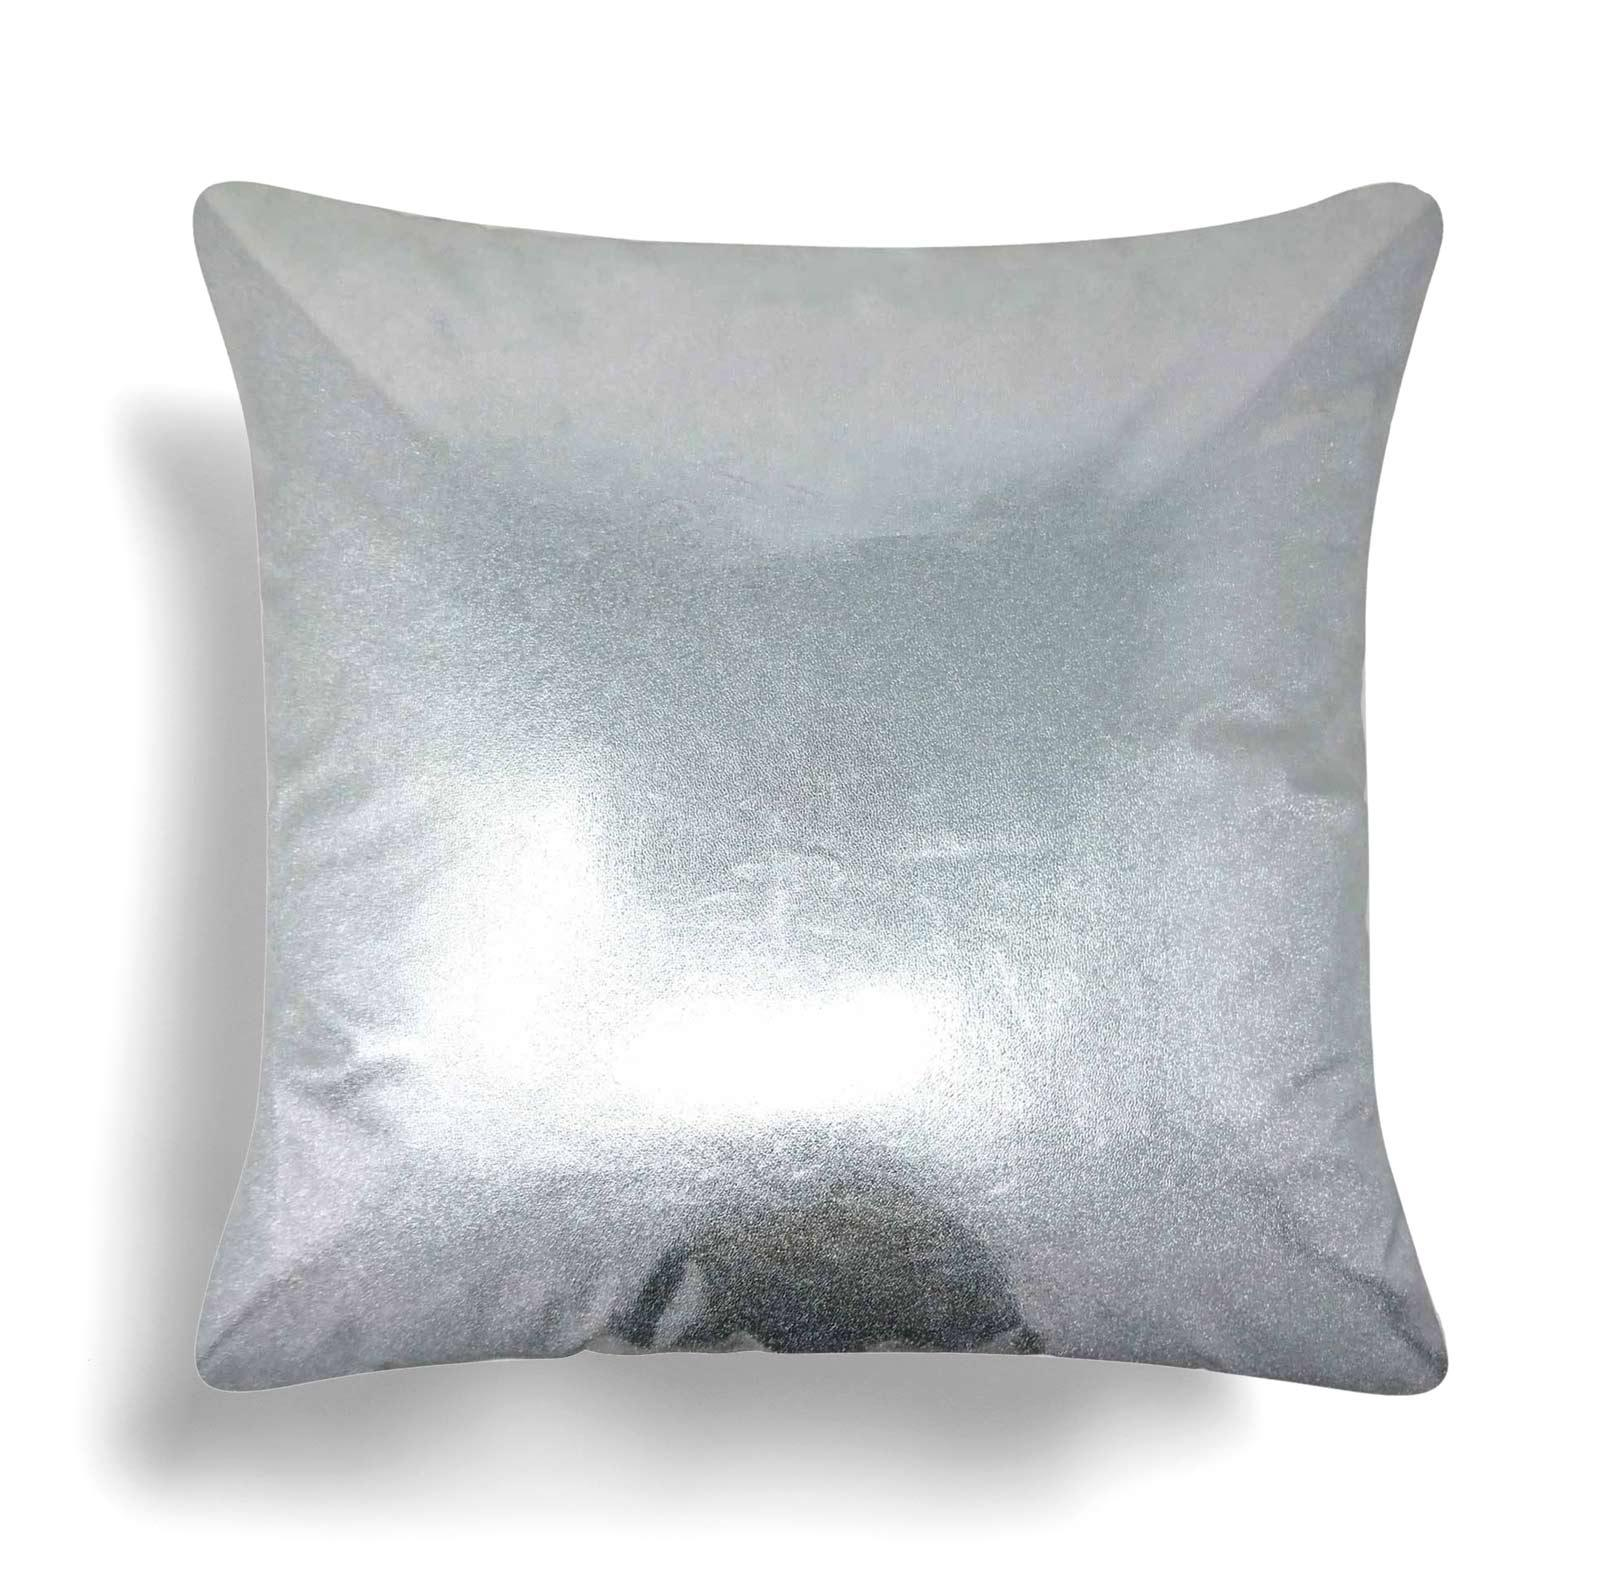 "Lux Metallic Silver Cushion Covers 17"" x 17"" -  - Ideal Textiles"